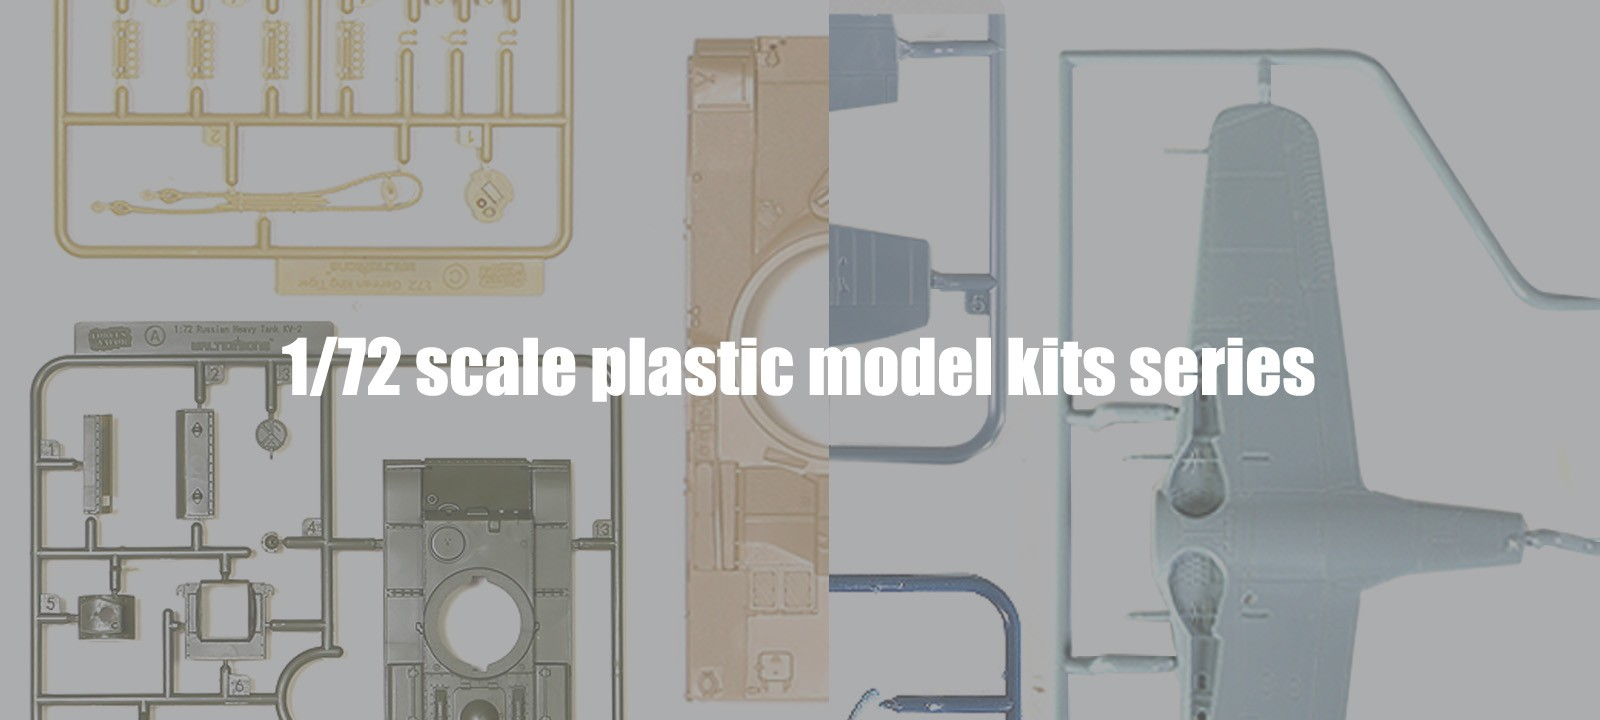 72nd scale model kits series